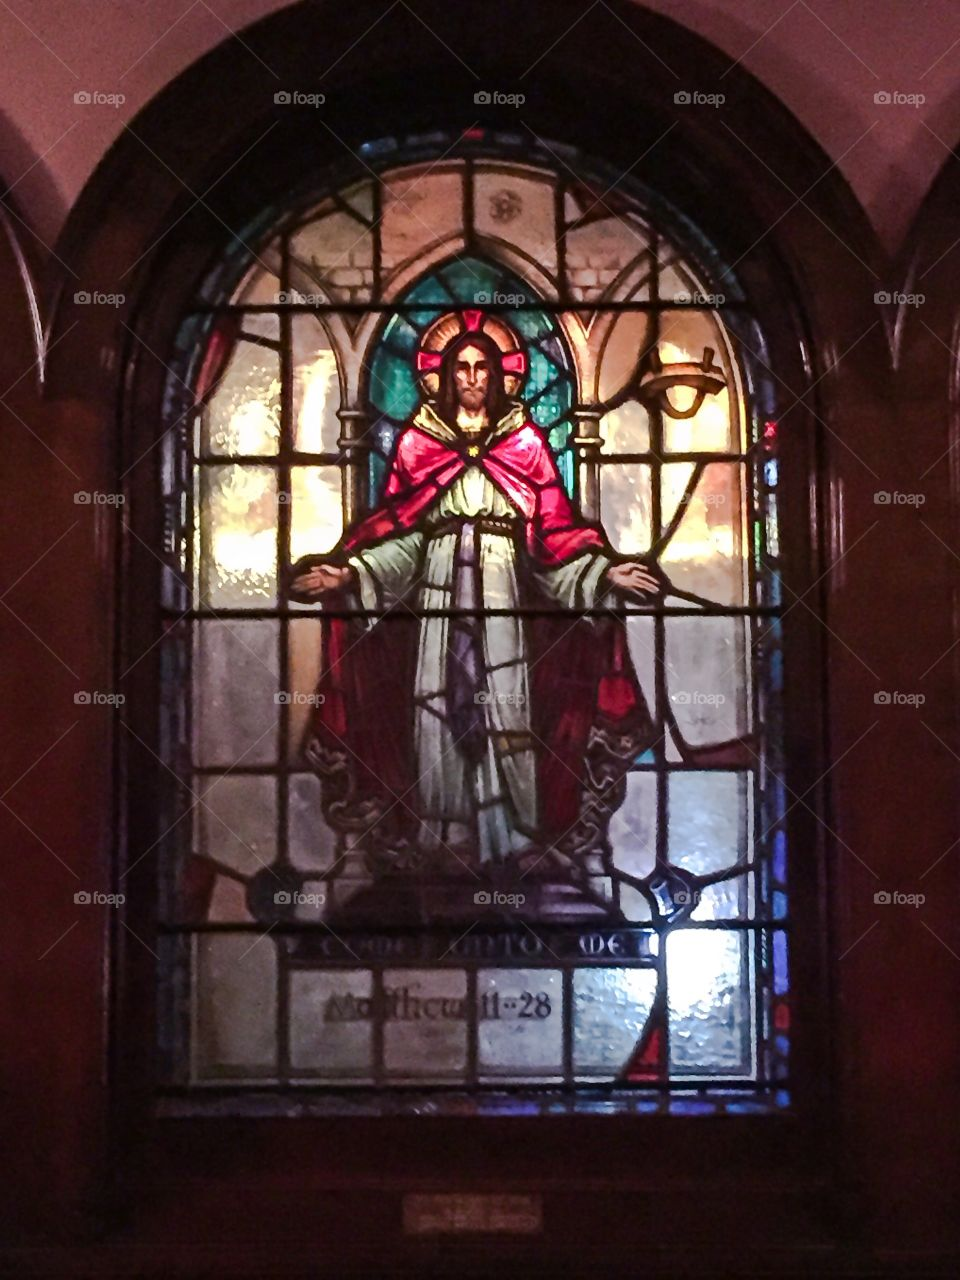 The risen Christ. Stained glass window of Jesus at Westminster Presbyterian Church in Minneapolis, Minnesota